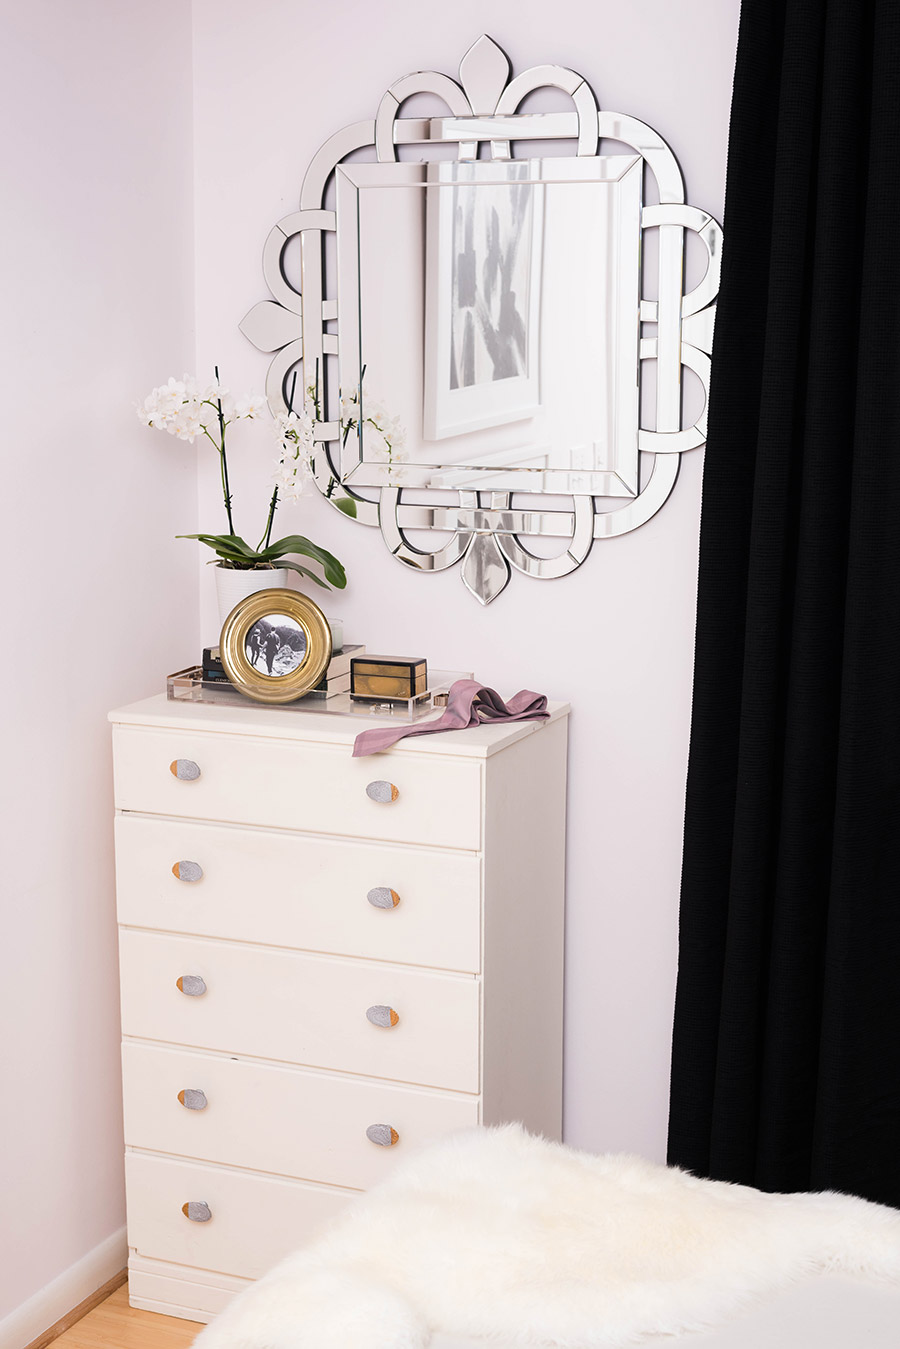 Mirror - HomeGoods | Curtains - Bed, Bath and Beyond | Dresser - Vintage | Knobs - Anthropologie | Accessories - HomeGoods | Orchid - HomeDepot